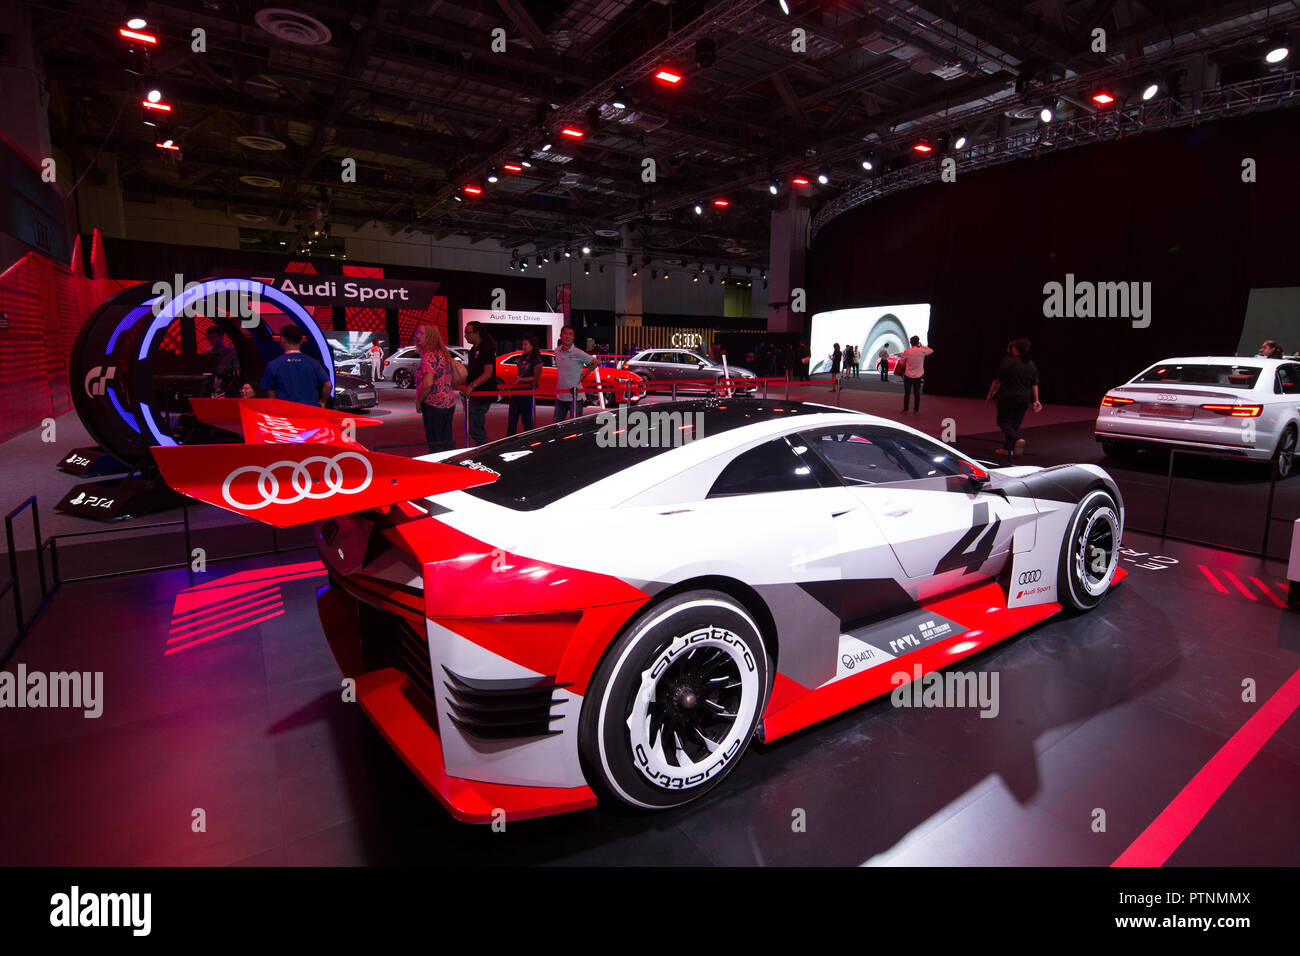 Audi Brand new experience 2018 happening in Singapore on 10 Oct 2018, Display of E-Tron Vision Gran Turismo car. - Stock Image